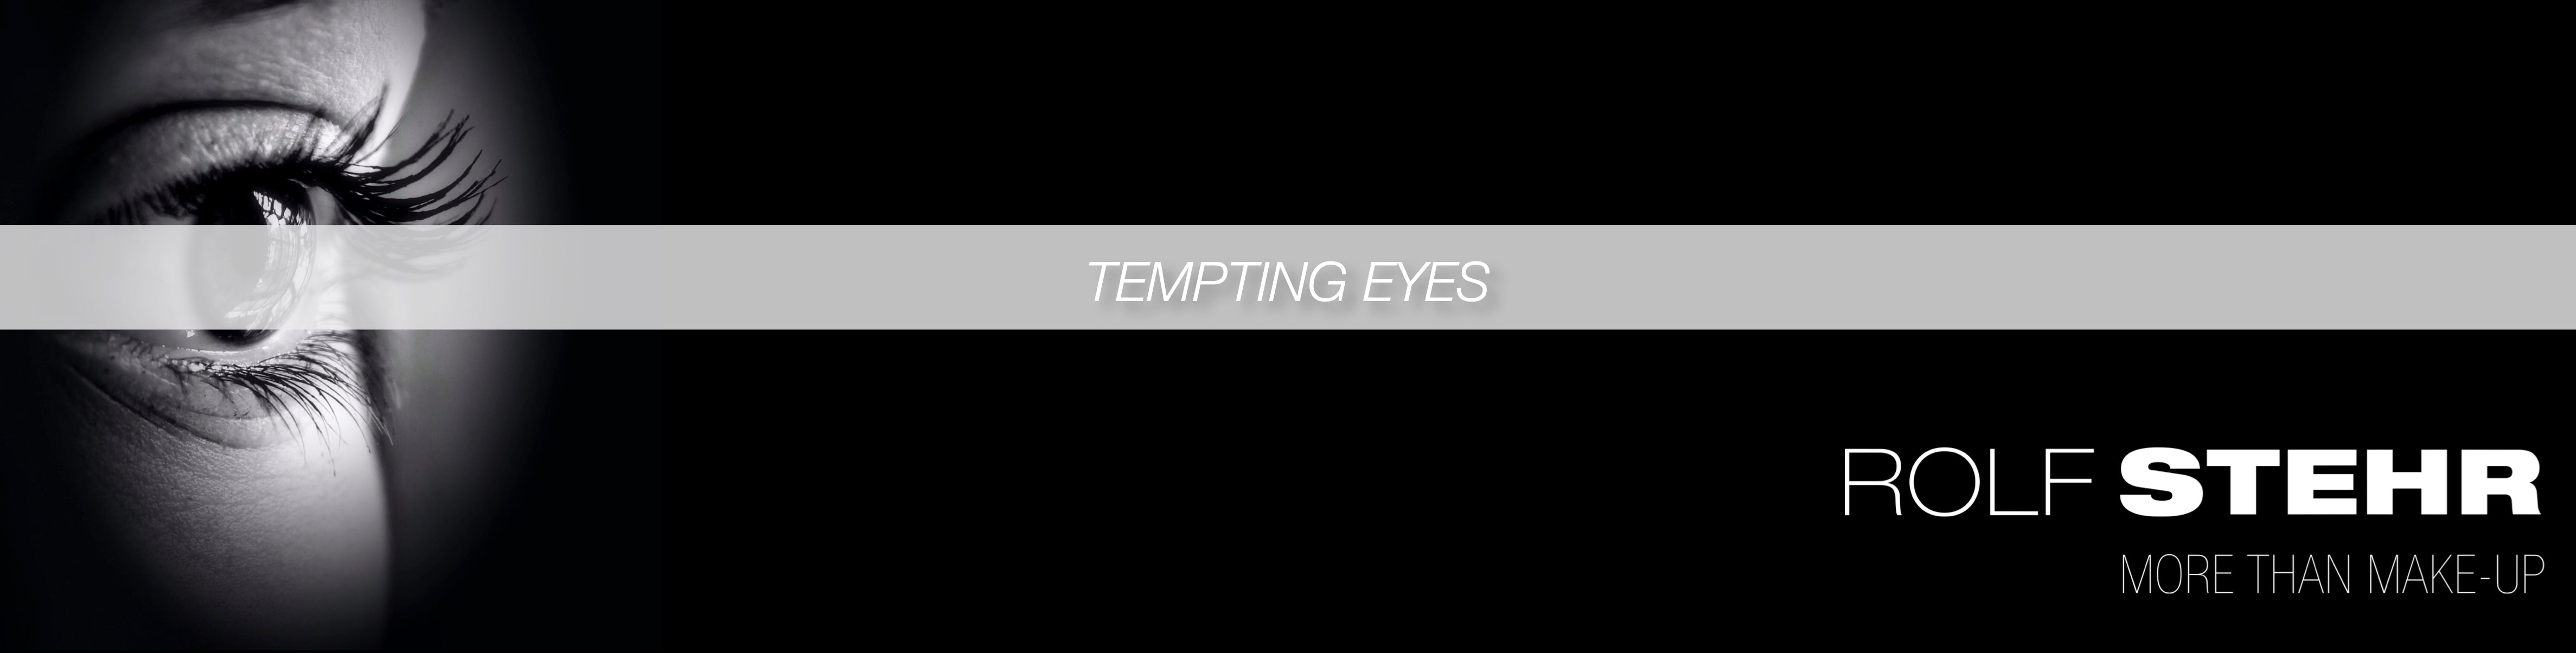 RS More than Make up - Tempting Eyes - TESTER